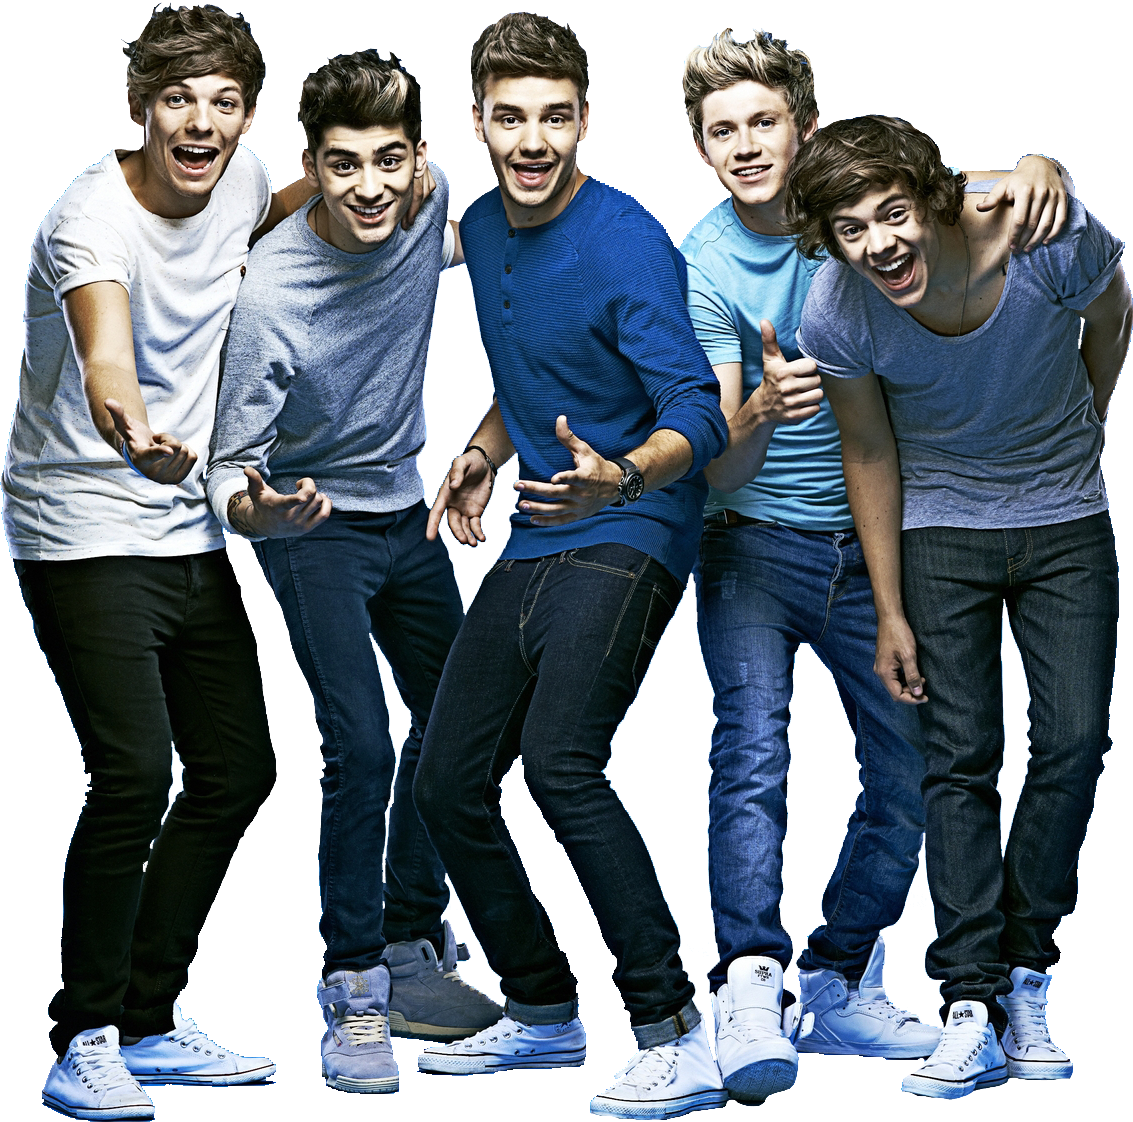 http://fc03.deviantart.net/fs70/f/2013/062/3/0/one_direction_png_4_by_meganl125-d5wwyot.png